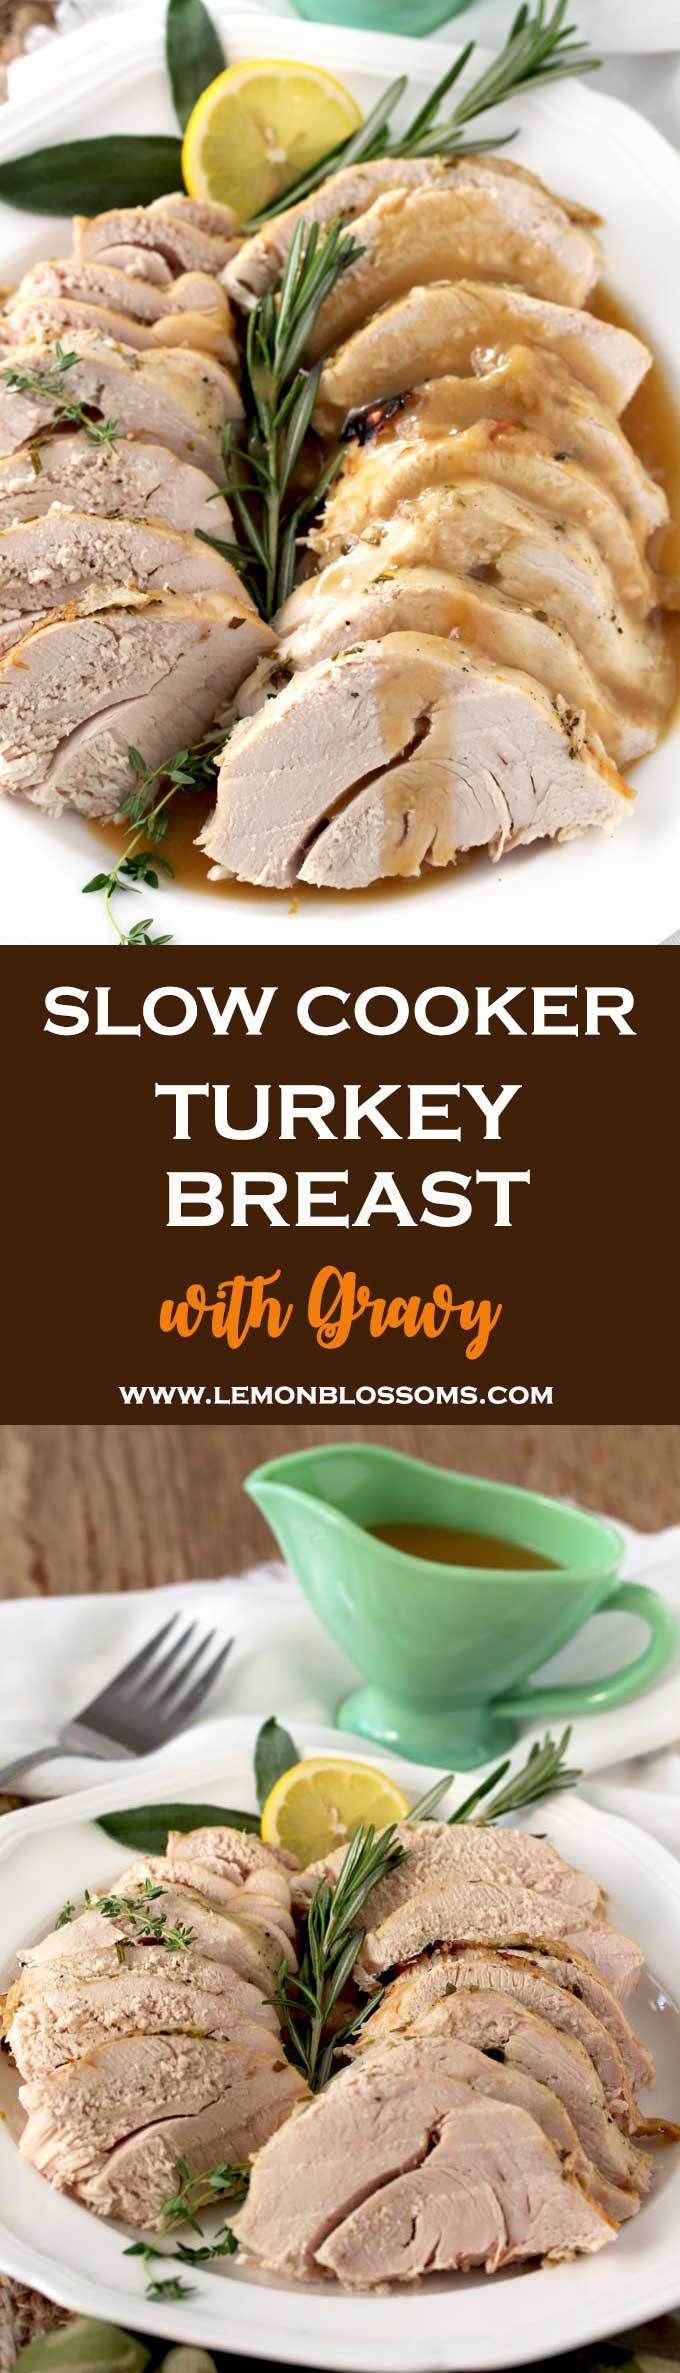 This Slow Cooker Turkey Breast with Gravy is the easiest way to cook a juicy, tender and delicious turkey without any hassle! The juices collected from cooking the turkey make the most wonderful gravy! Perfect for smaller holiday gatherings or for when you want to have perfectly cooked turkey ready for lunches, salads and sandwiches. #slowcooker #crockpot #turkey #gravy